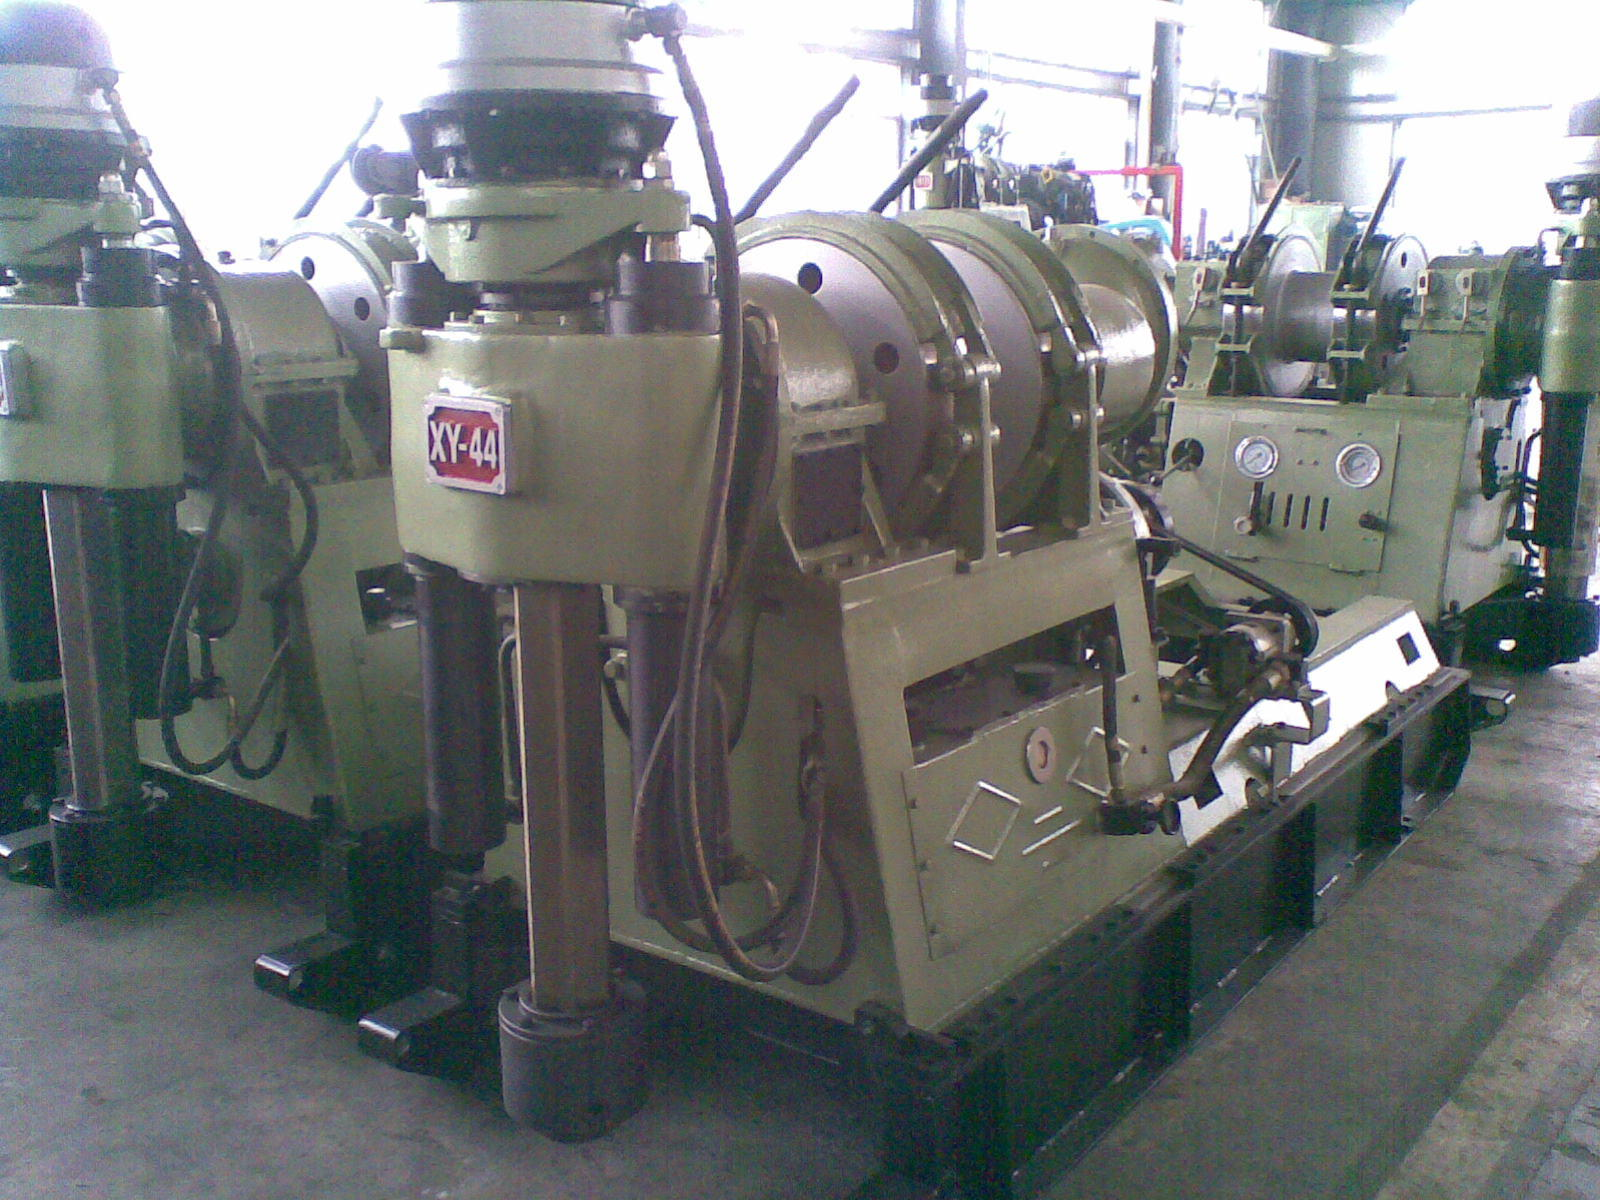 Spindle Type Core Drilling Rig (XY-44A) with 1400m Drilling Capacity